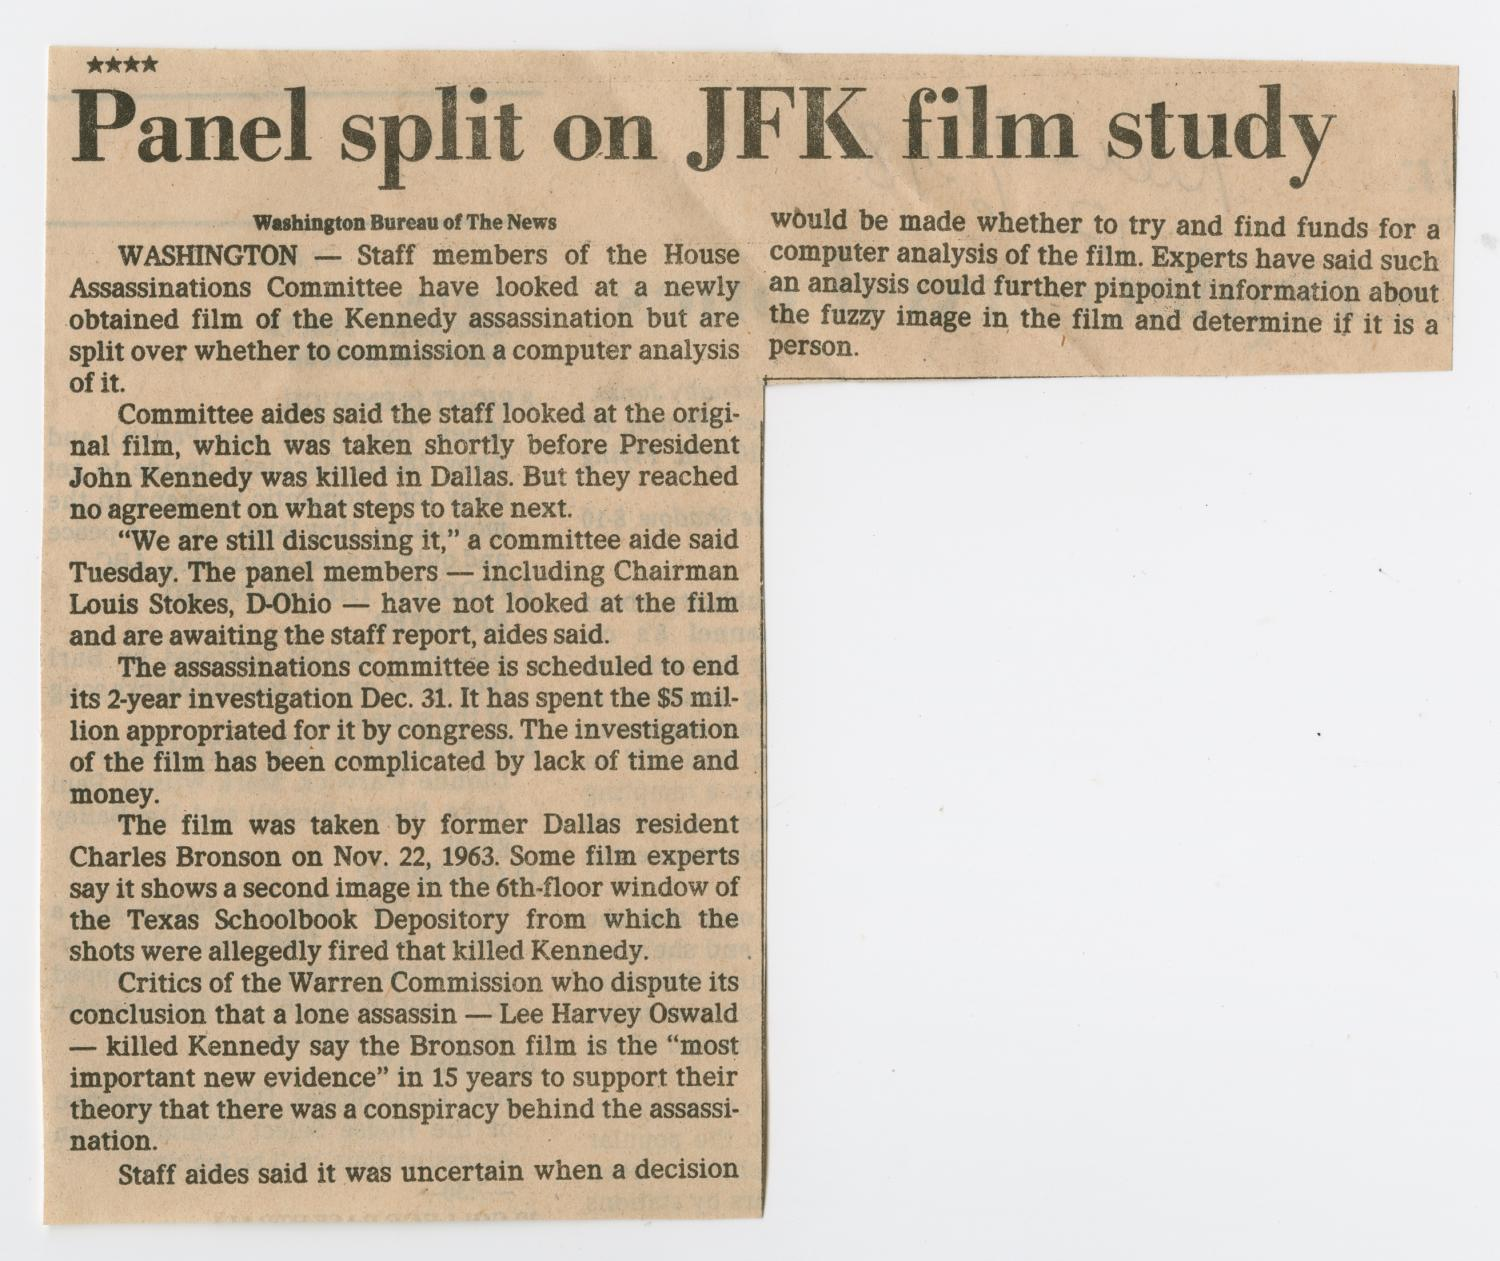 an analysis of the investigation and presented facts in the assassination of jfk